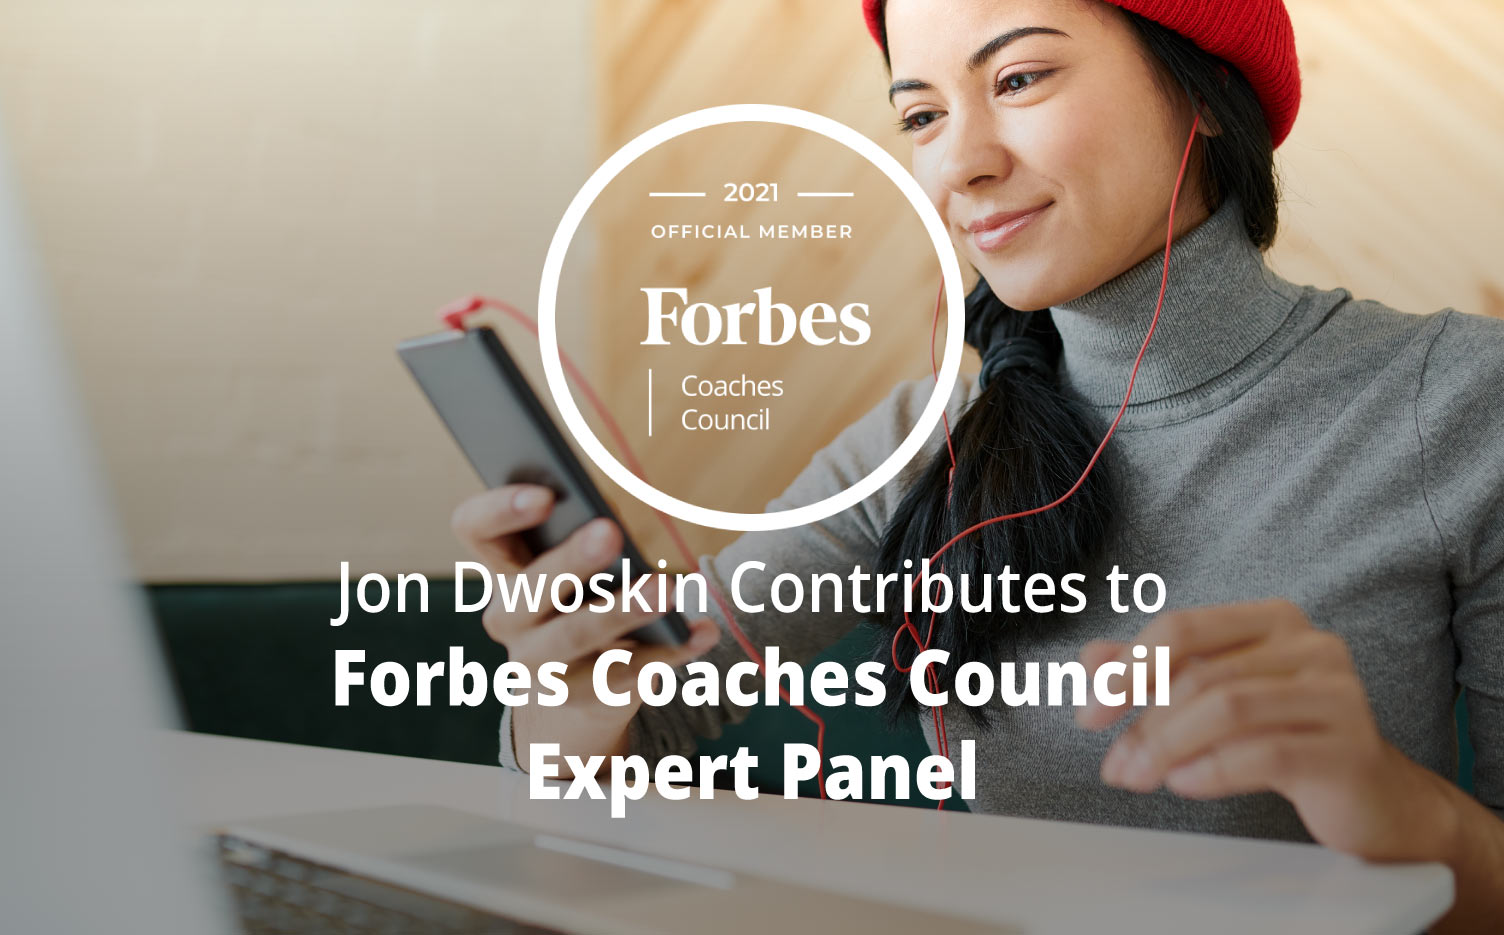 Jon Dwoskin Contributes to Forbes Coaches Council Expert Panel: 14 Ways To Prepare For How Gen Z Will Impact The Workforce